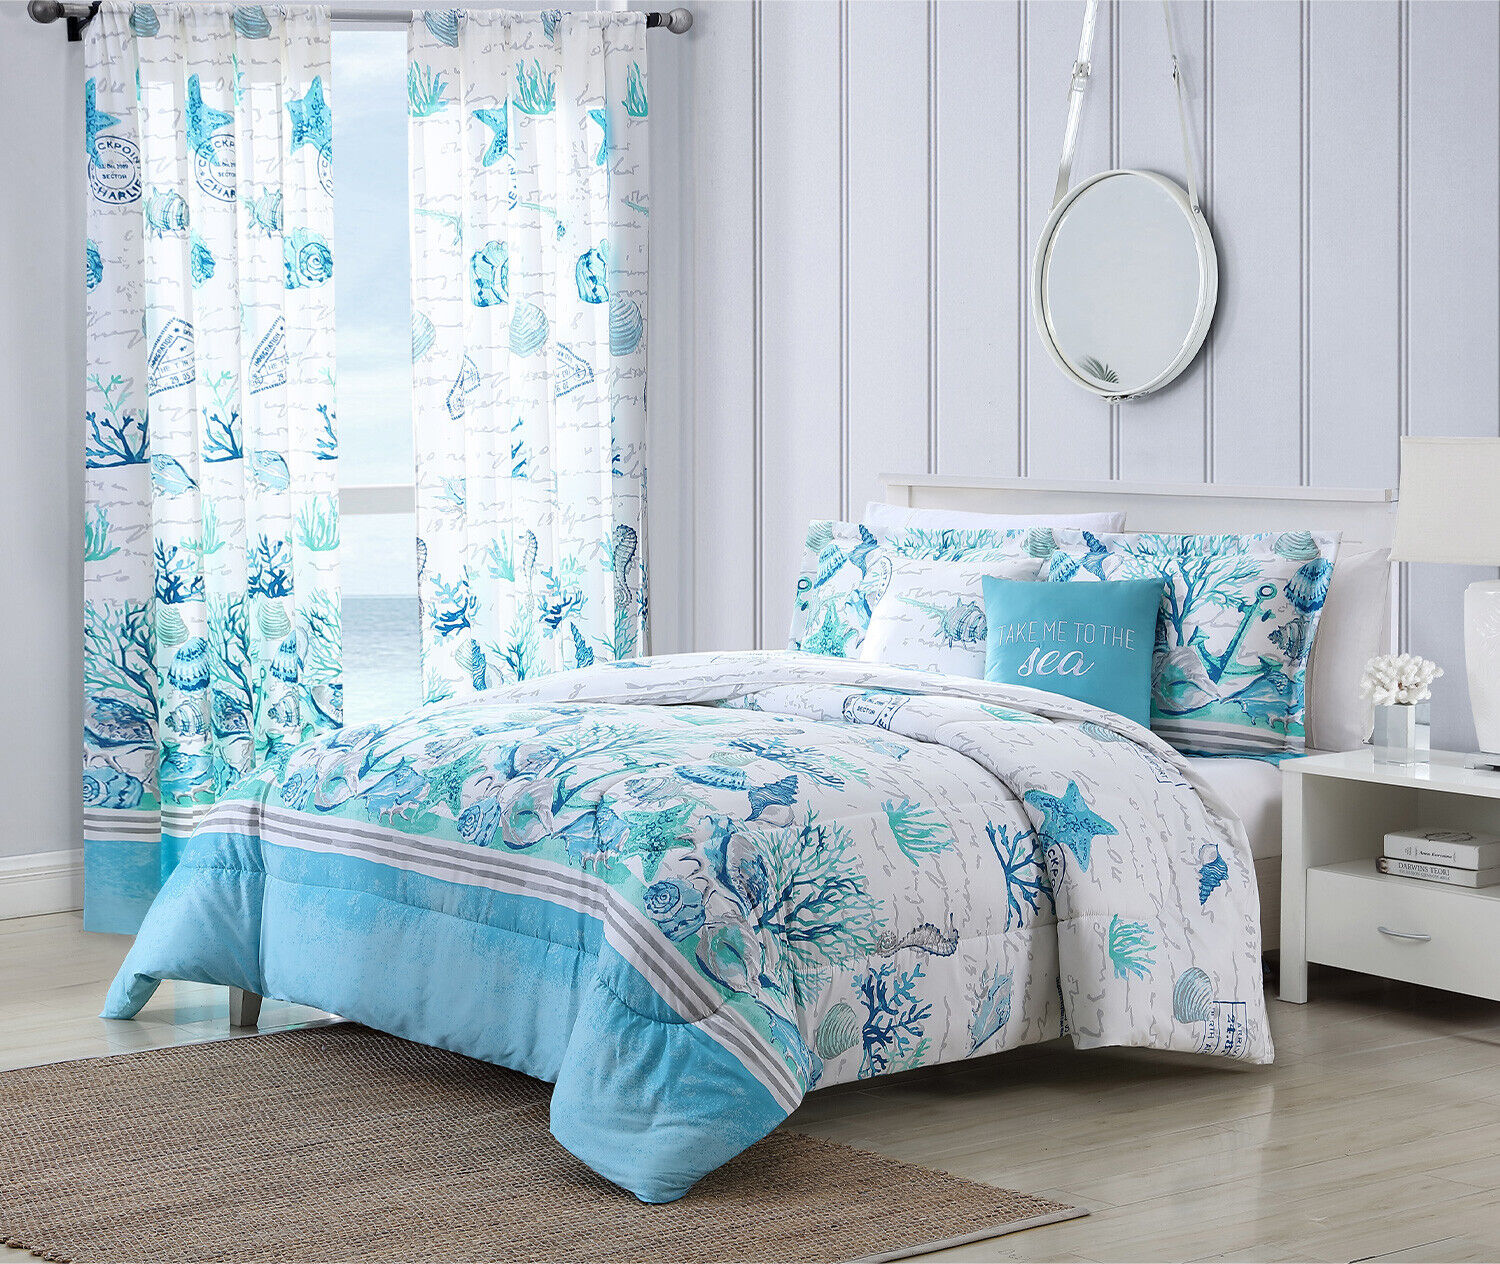 Twin, Full/Queen, or King Comforter Bed Set or Window Curtains Coastal Seashell Bedding